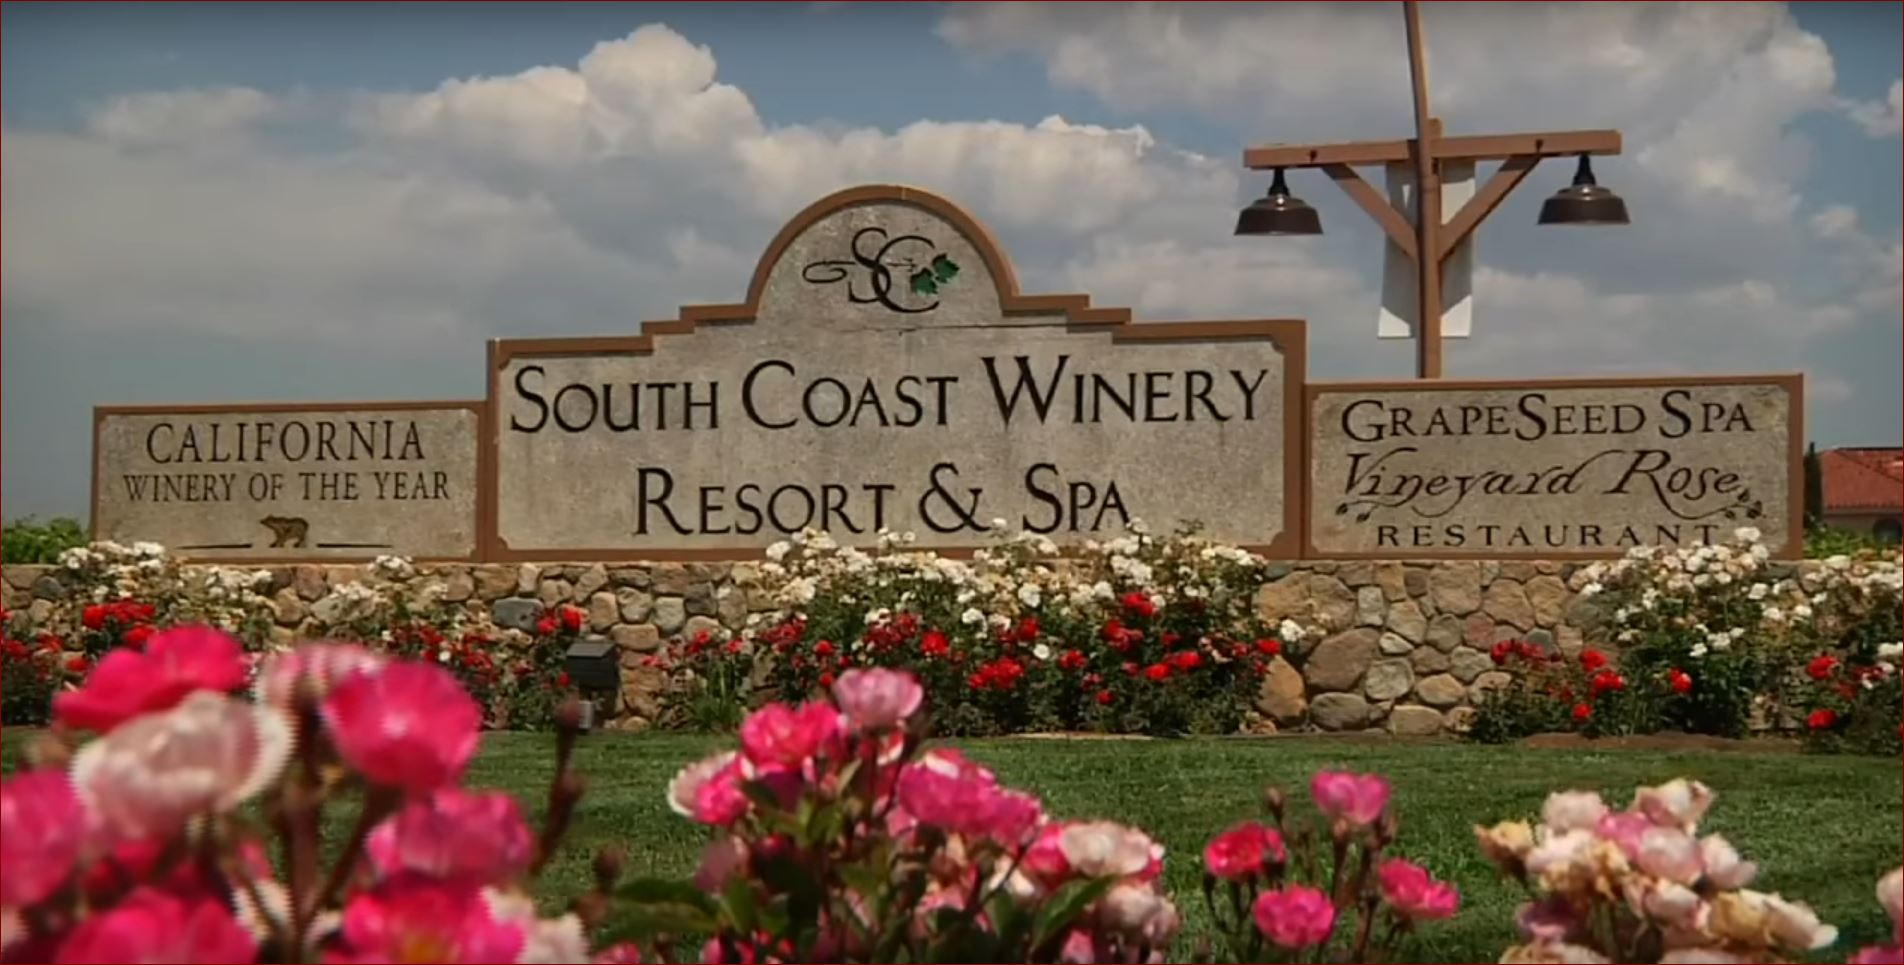 Winery and Spa Resort of the Week: South Coast Winery Resort & Spa